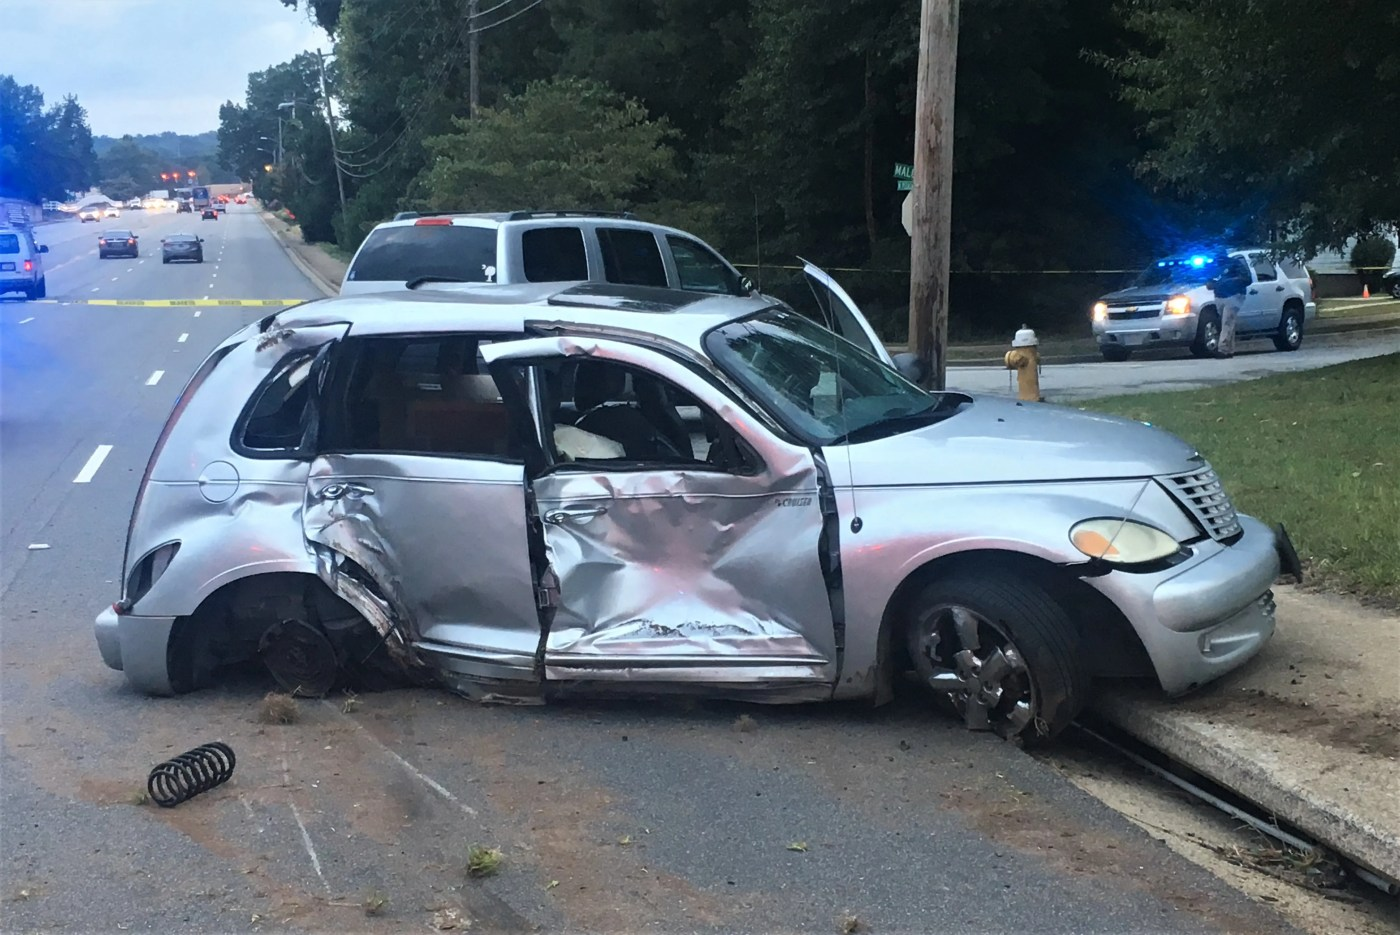 A Chrysler PT Cruiser police say struck a 13-year-old boy during a possible road rage incident sits at the scene of the wreck.